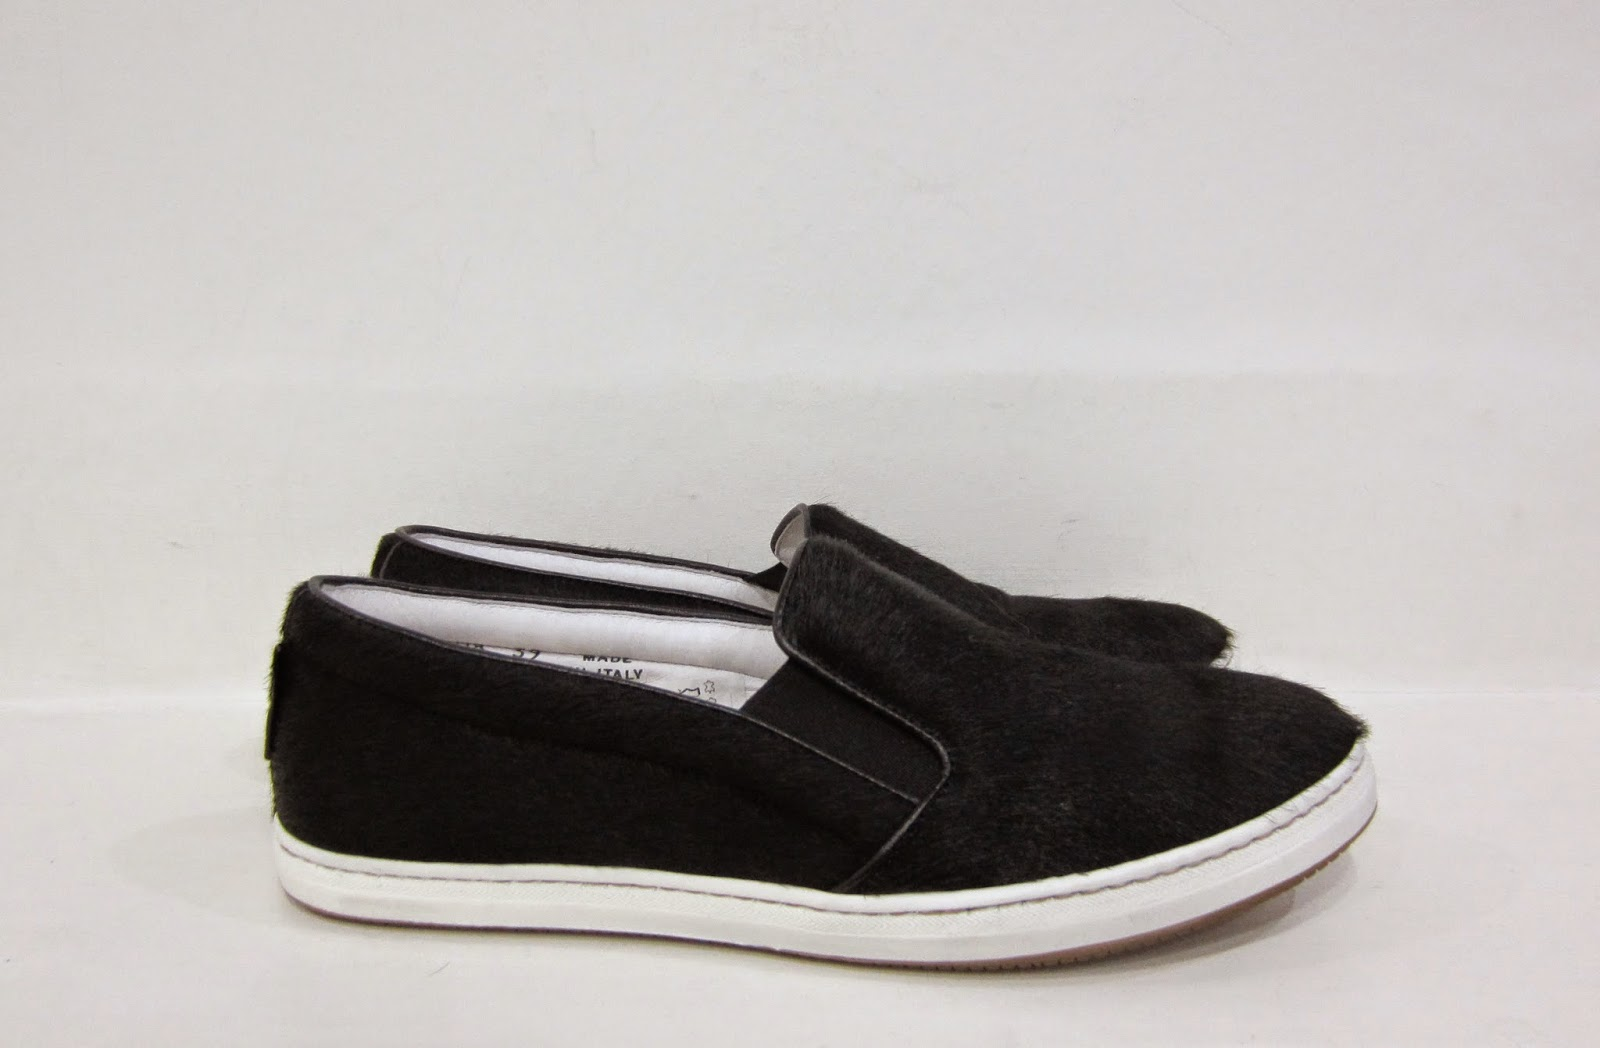 Russell & Bromley Black Pony Hair Sneakers